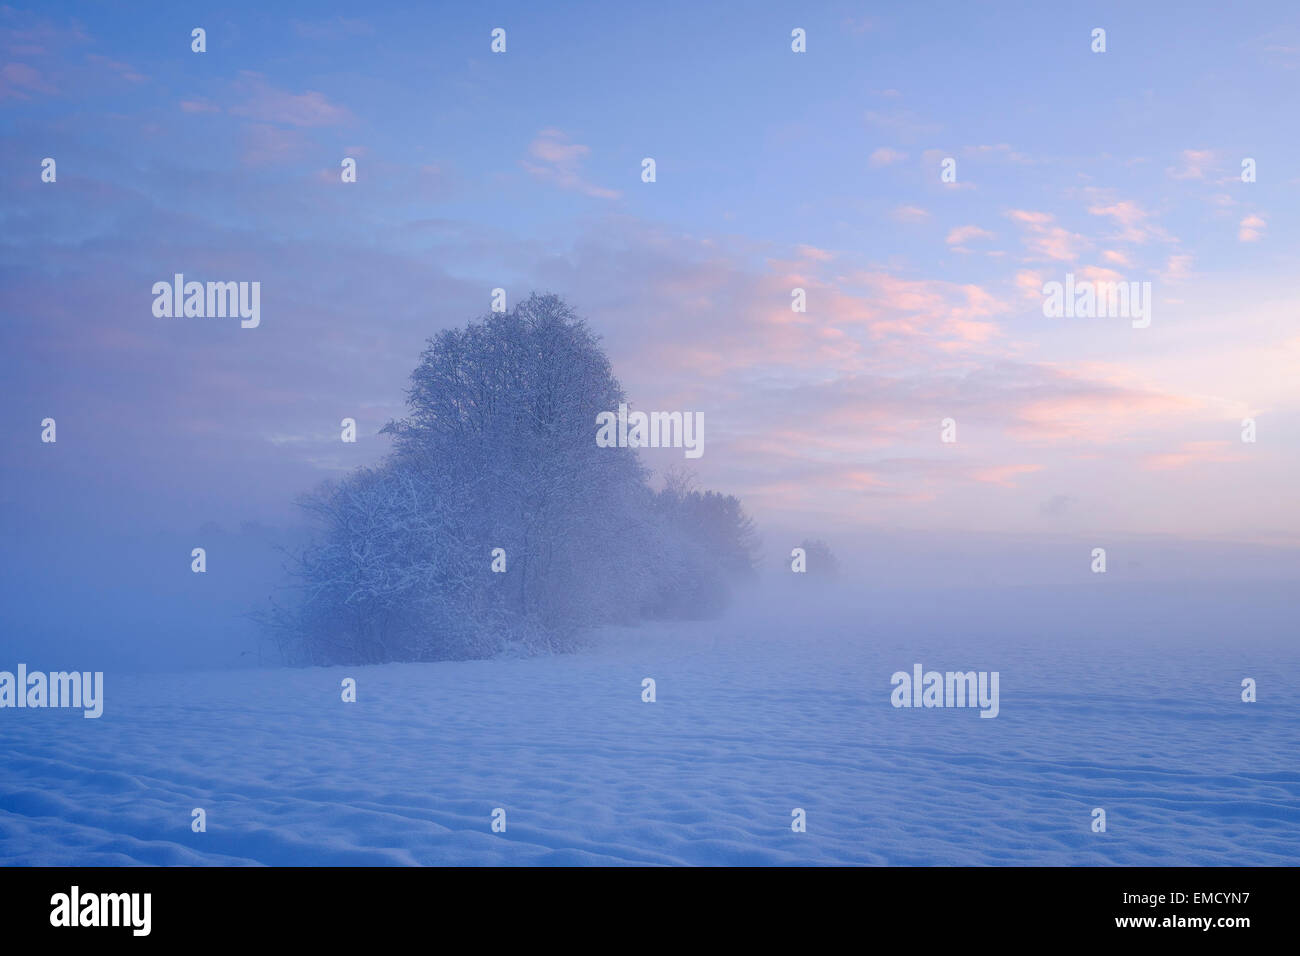 Germany, Gelting, mystical winter landscape at morning light - Stock Image